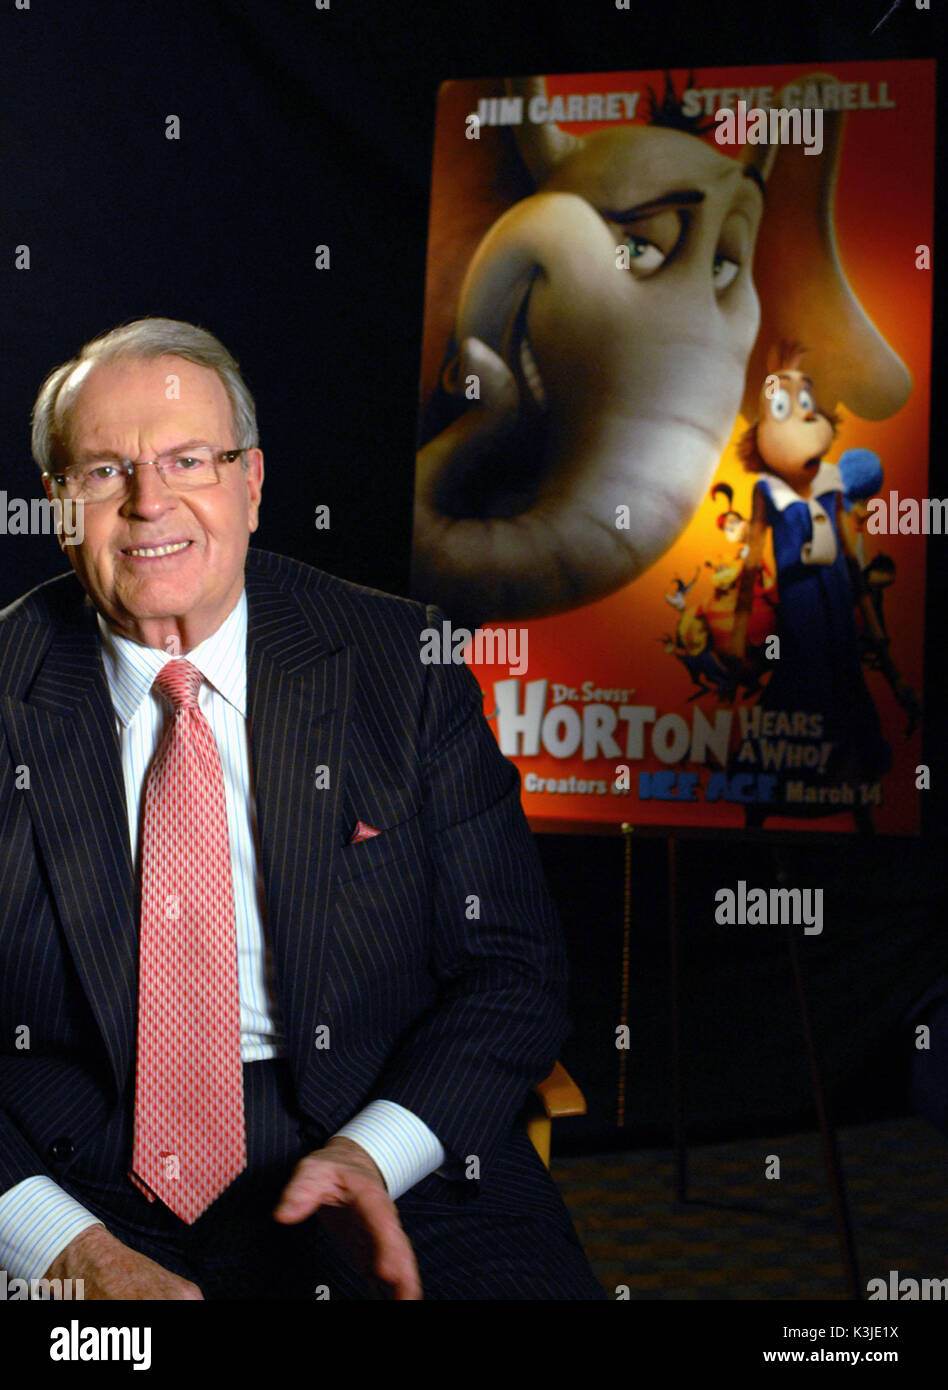 HORTON HEARS A WHO! [US 2008] aka DR. SUESS' HORTON HEARS A WHO! Esteemed newsman CHARLES OSGOOD is the film's Narrator       HORTON HEARS A WHO!     Date: 2008 - Stock Image